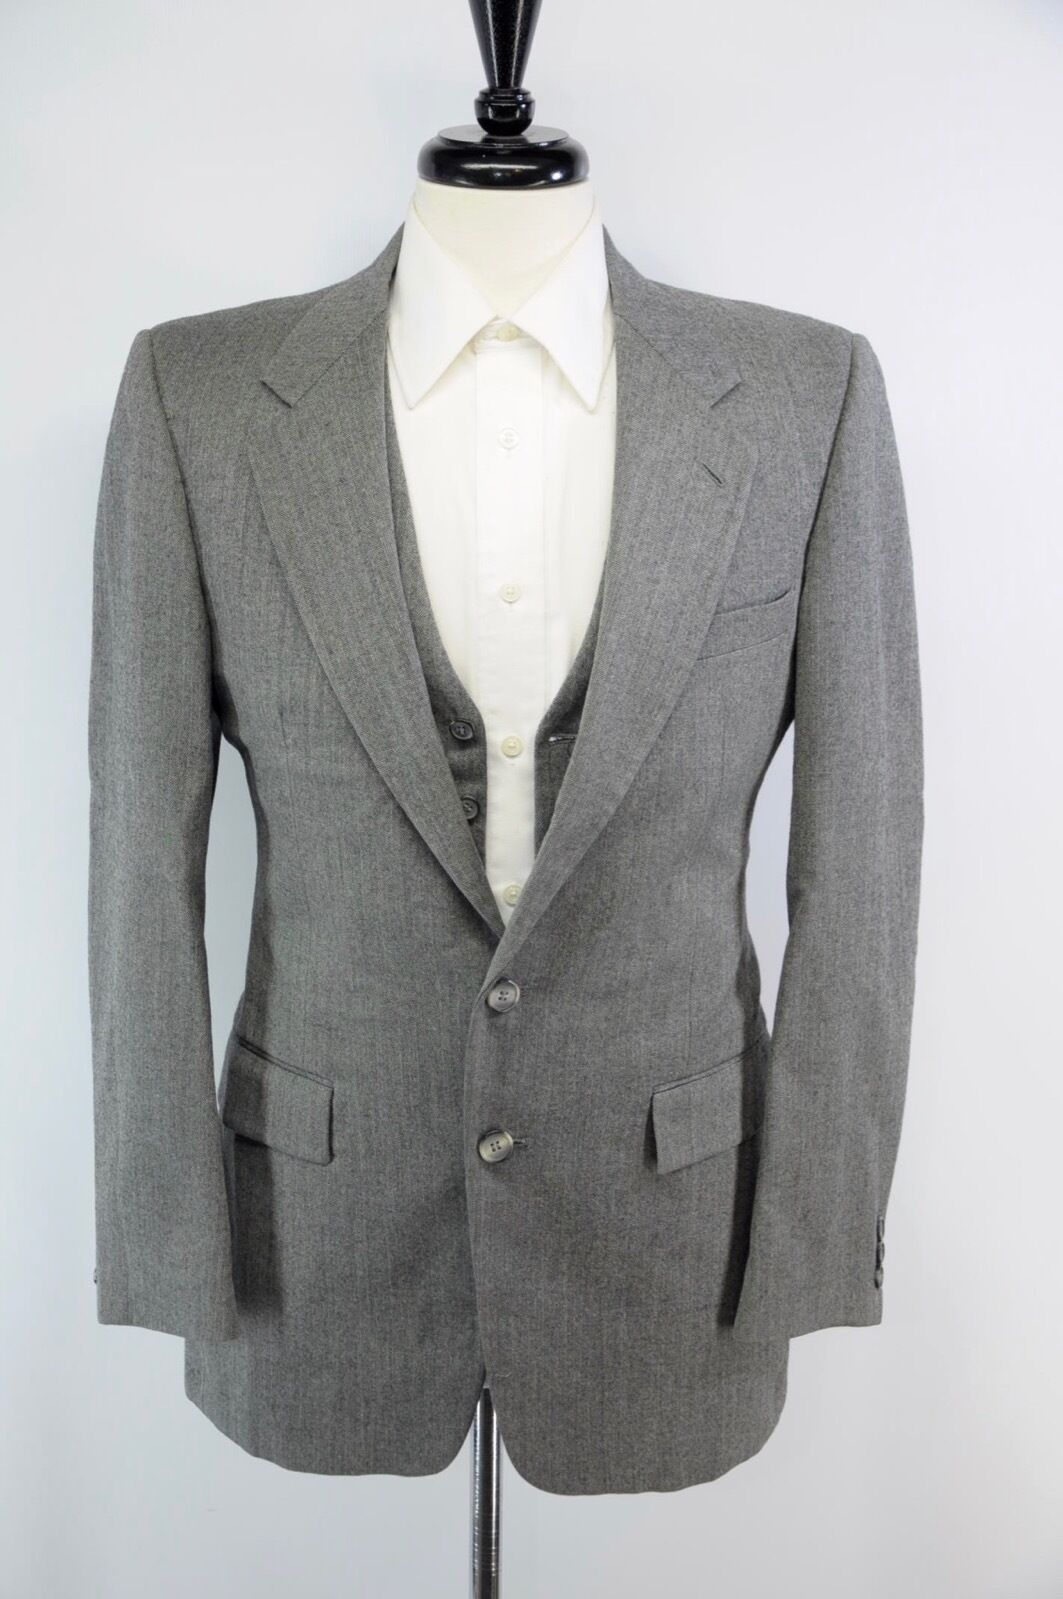 Eagle Clothes Herringbone Charcoal grau Wool Vest & Sport Coat 2 Piece Set 36R